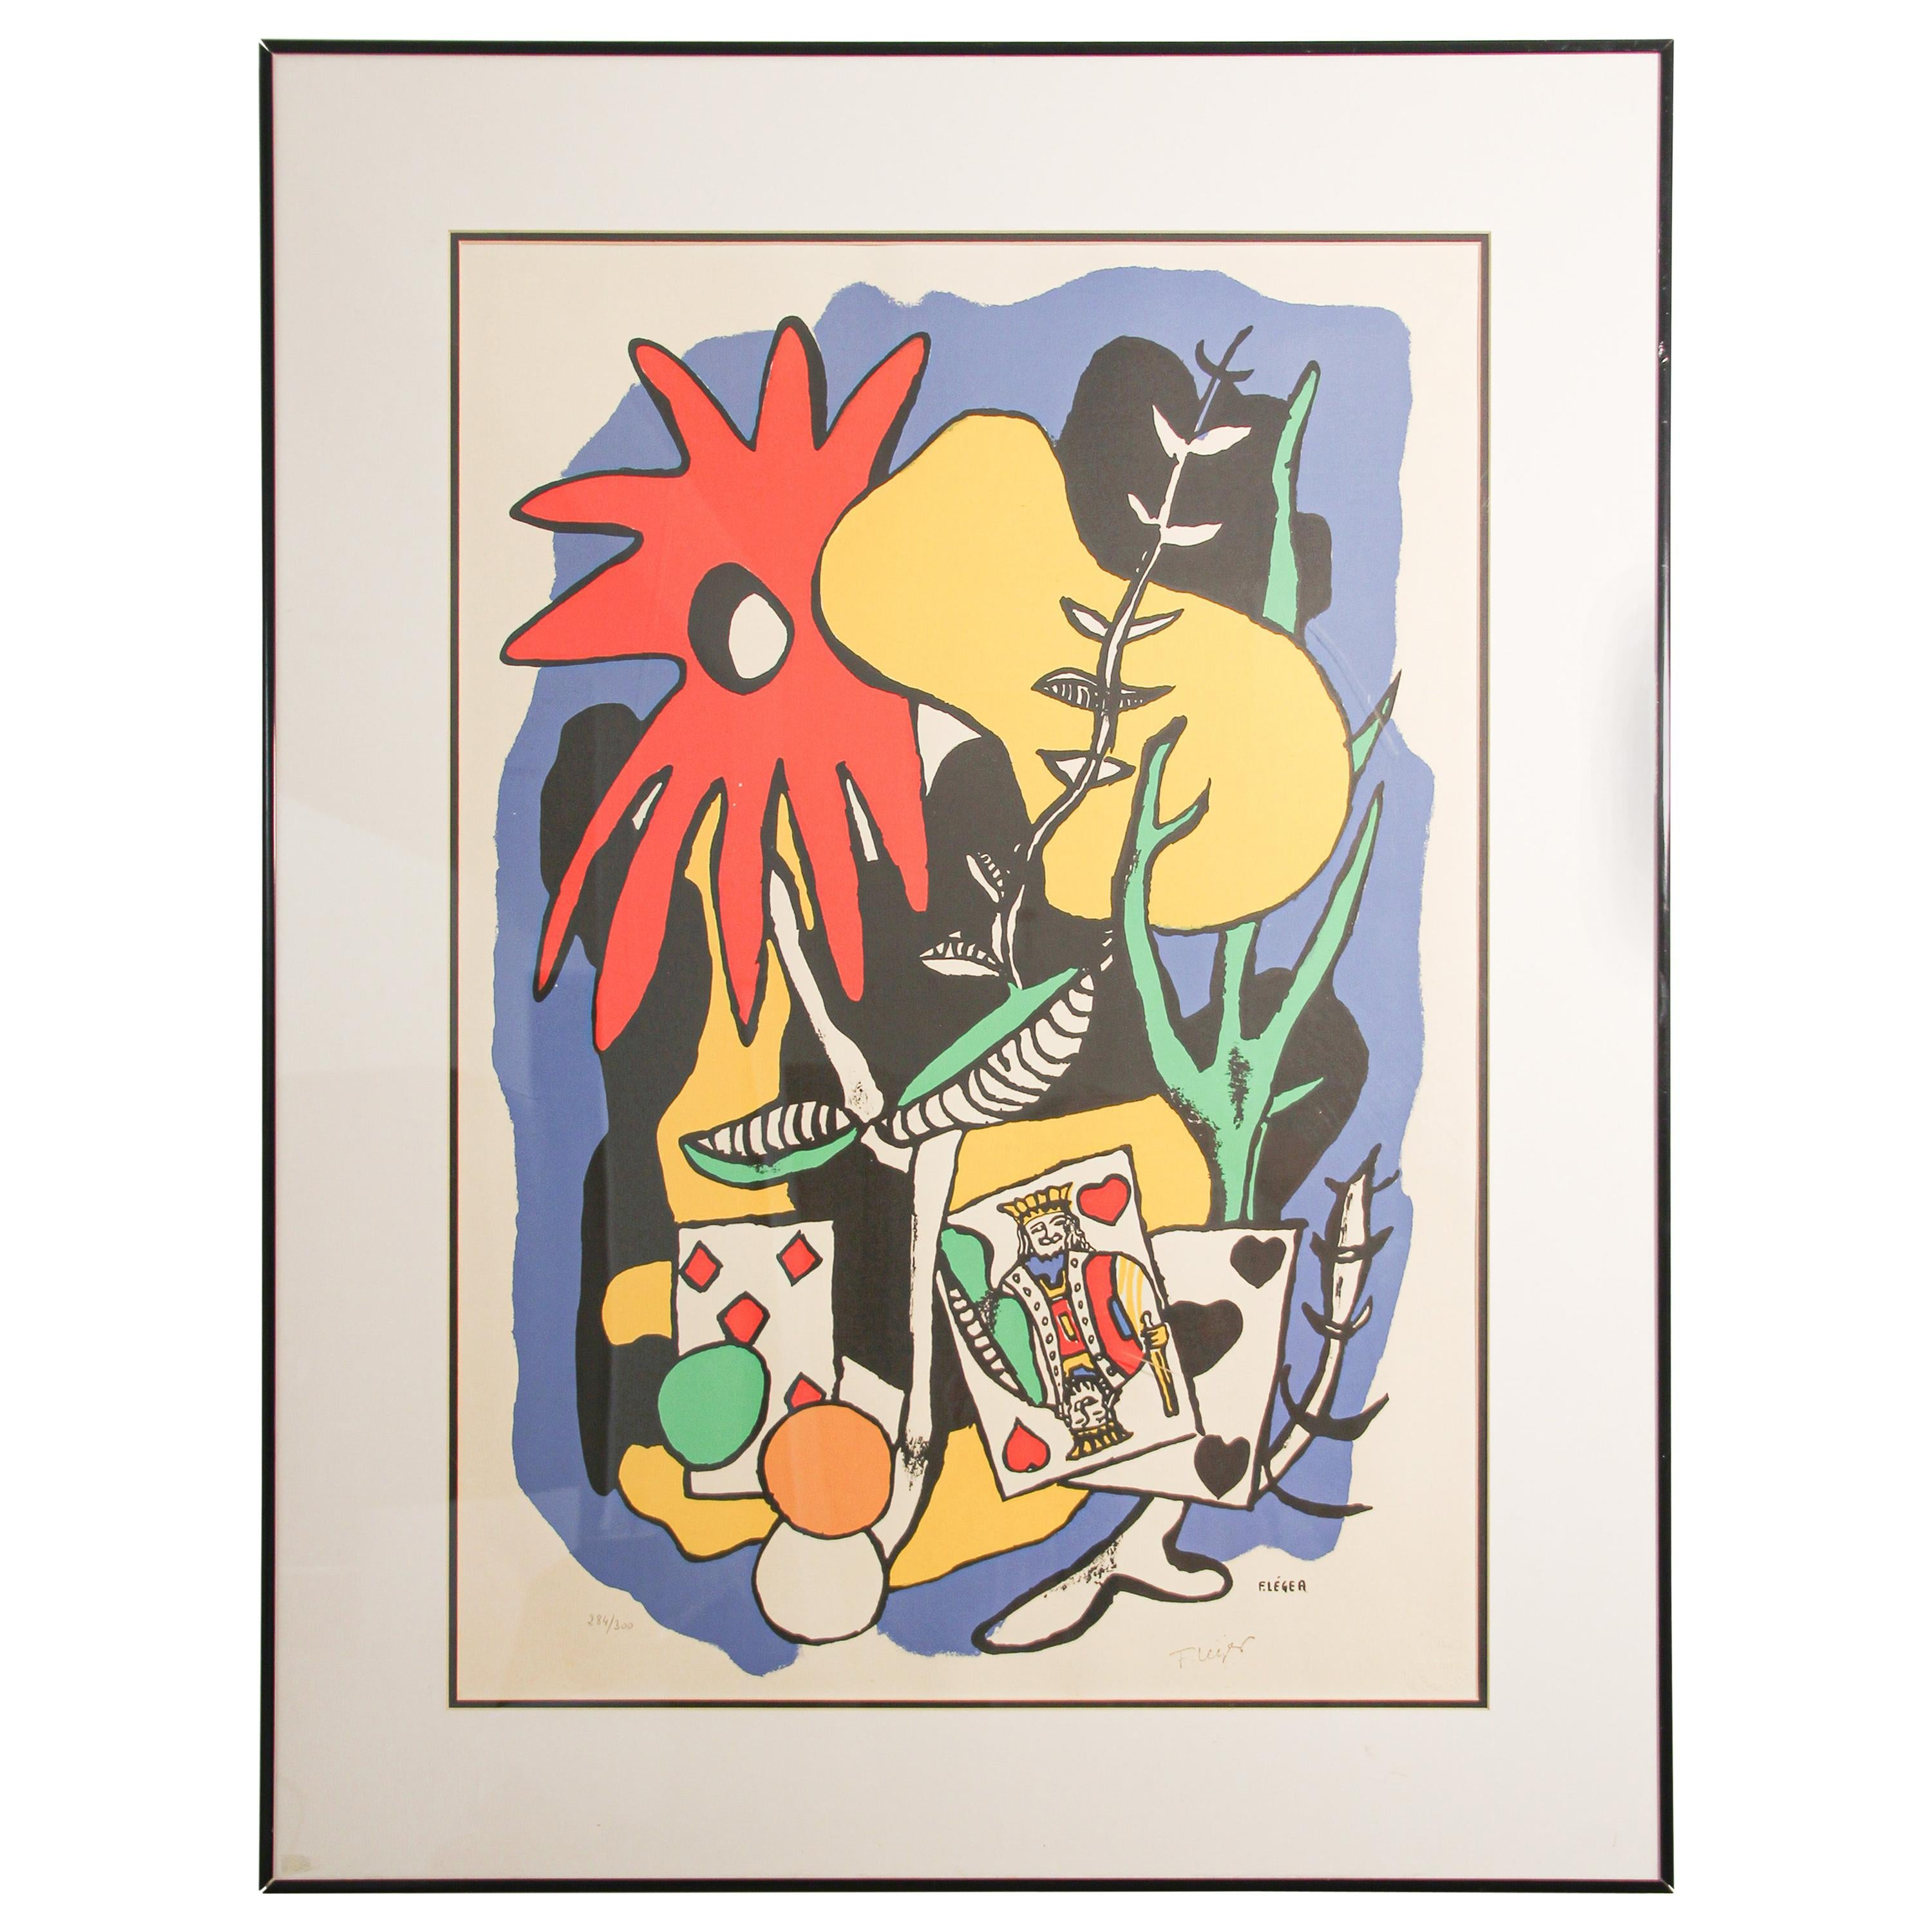 Fernand Leger The King of Heart, Signed and Numbered 284/300 Lithograph